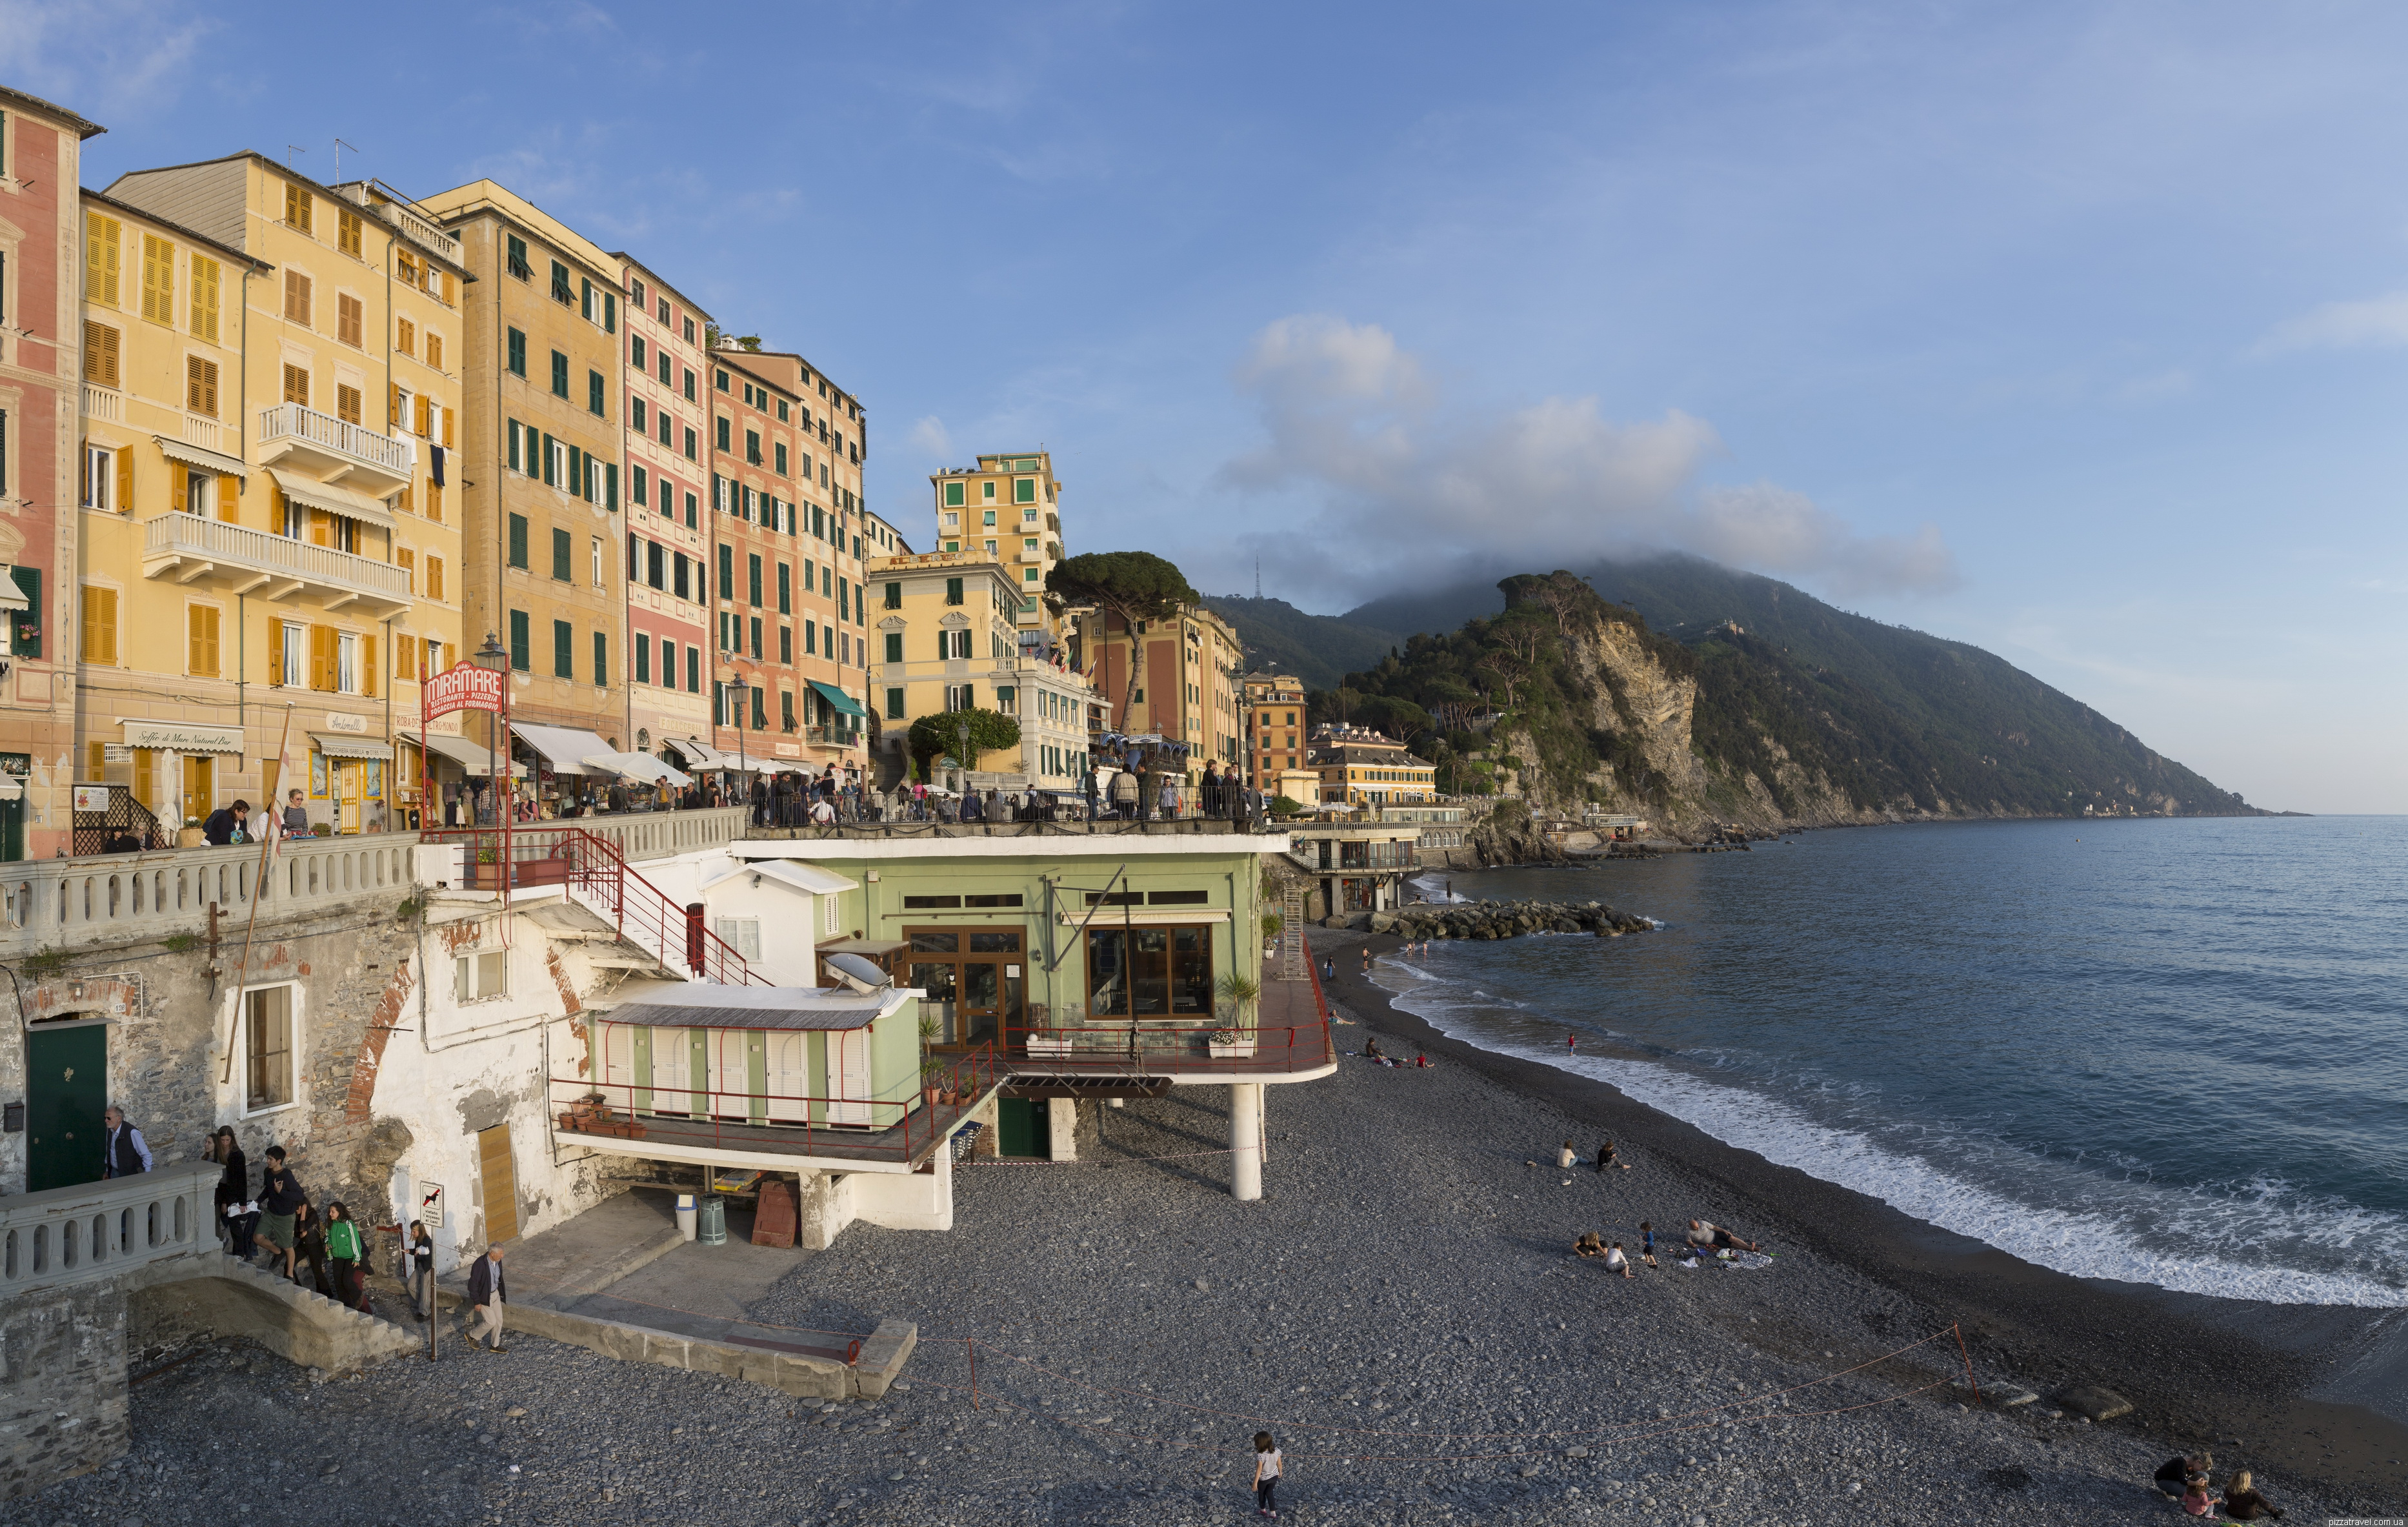 Camogli Italy Blog About Interesting Places